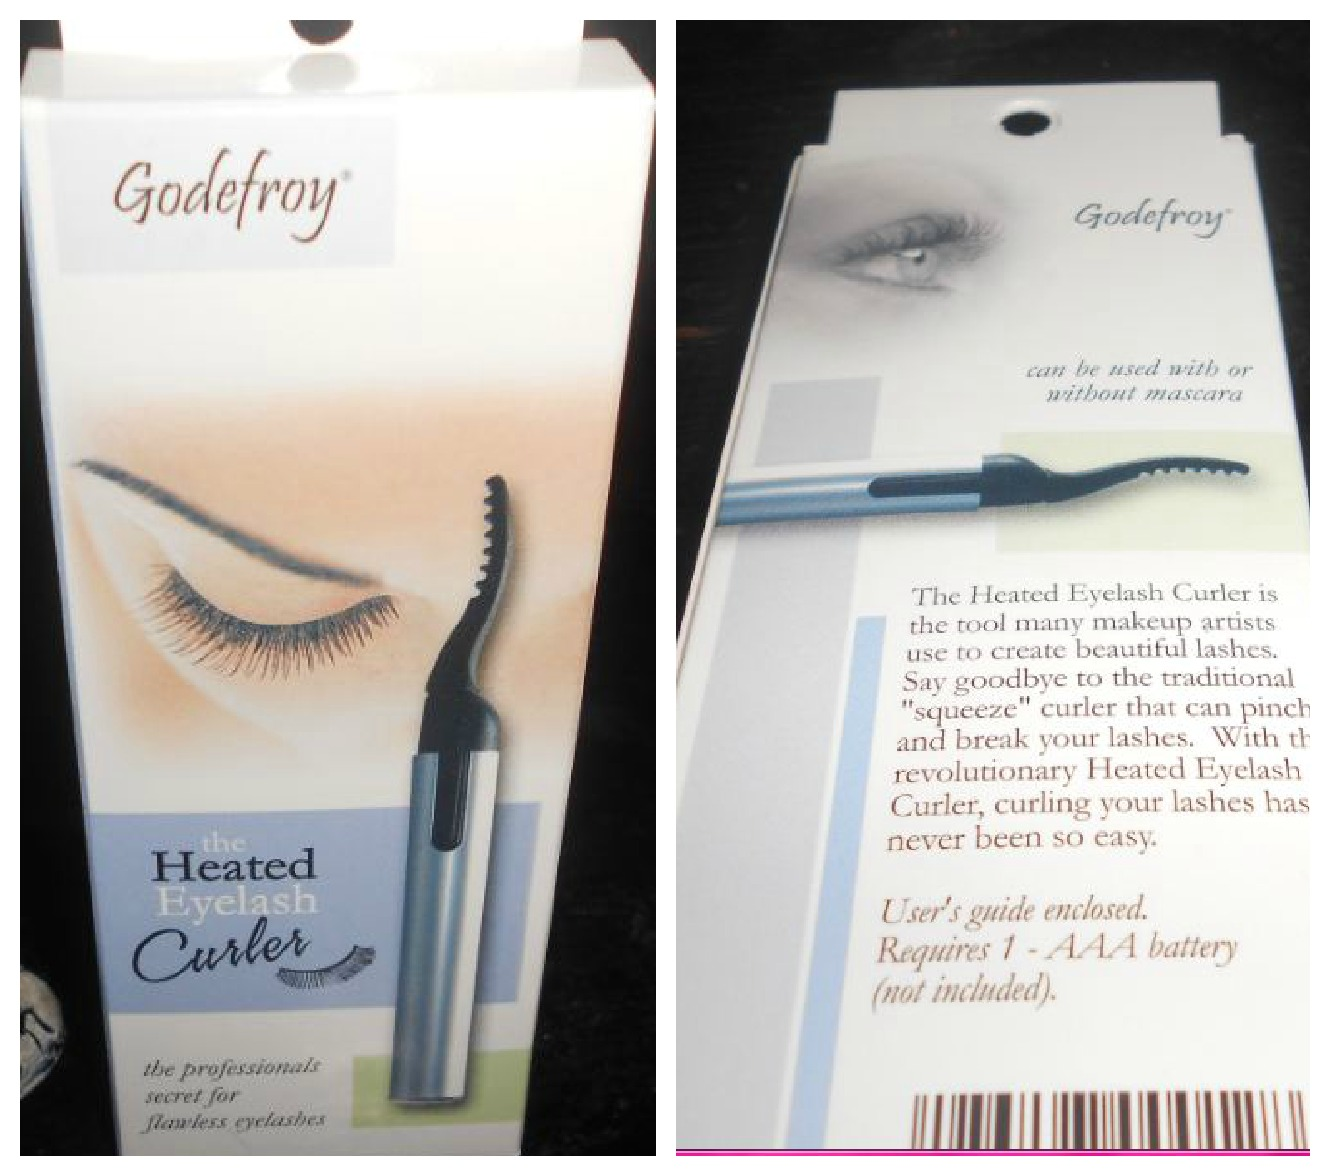 Little Yllw Bird Godefroy Heated Eyelash Curler Review And